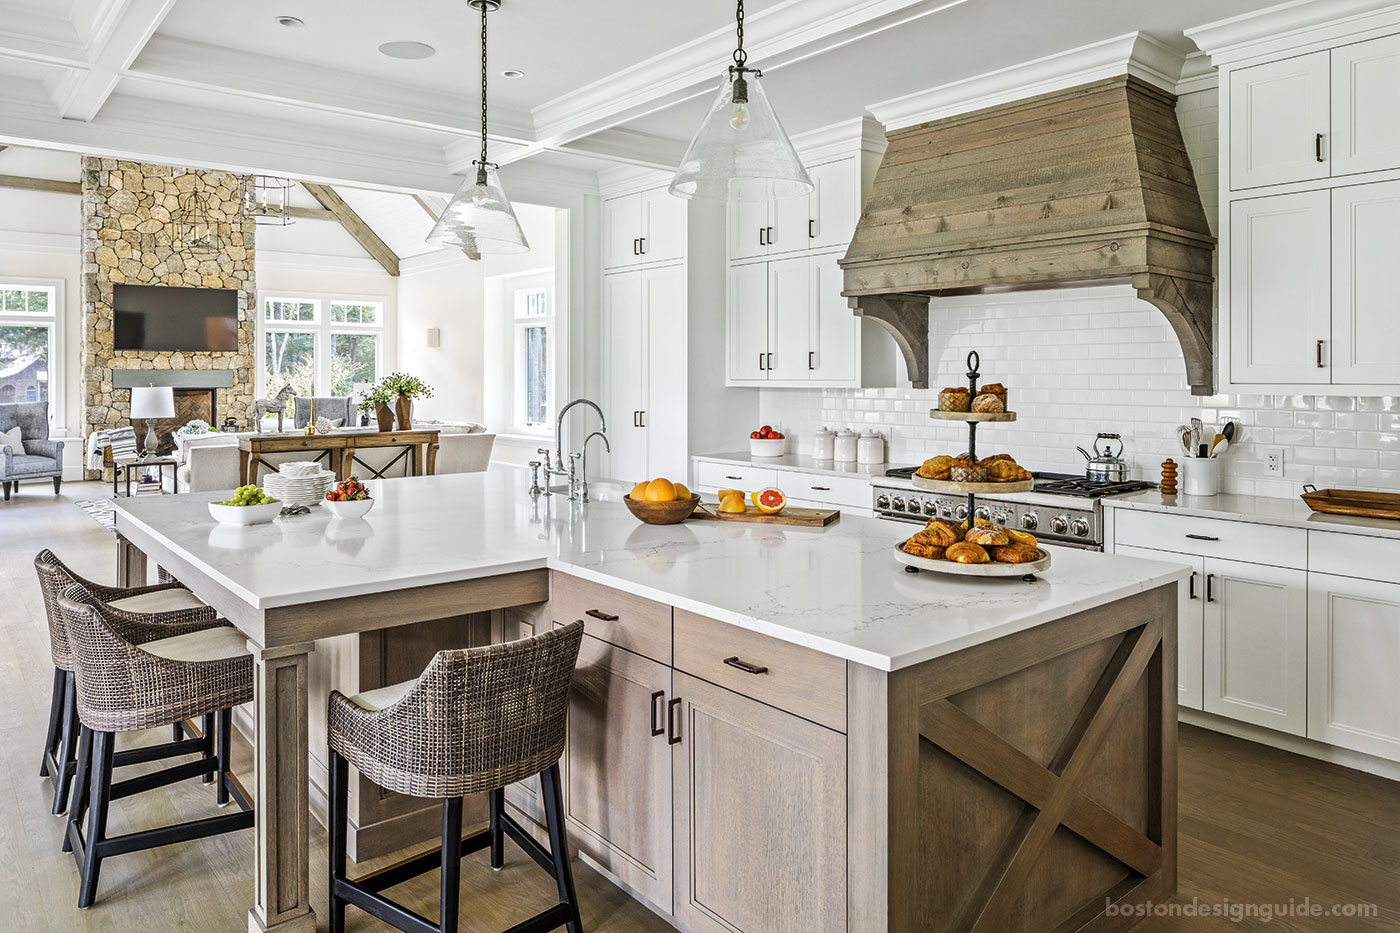 Farmhouse-style kitchen for a classic New England home